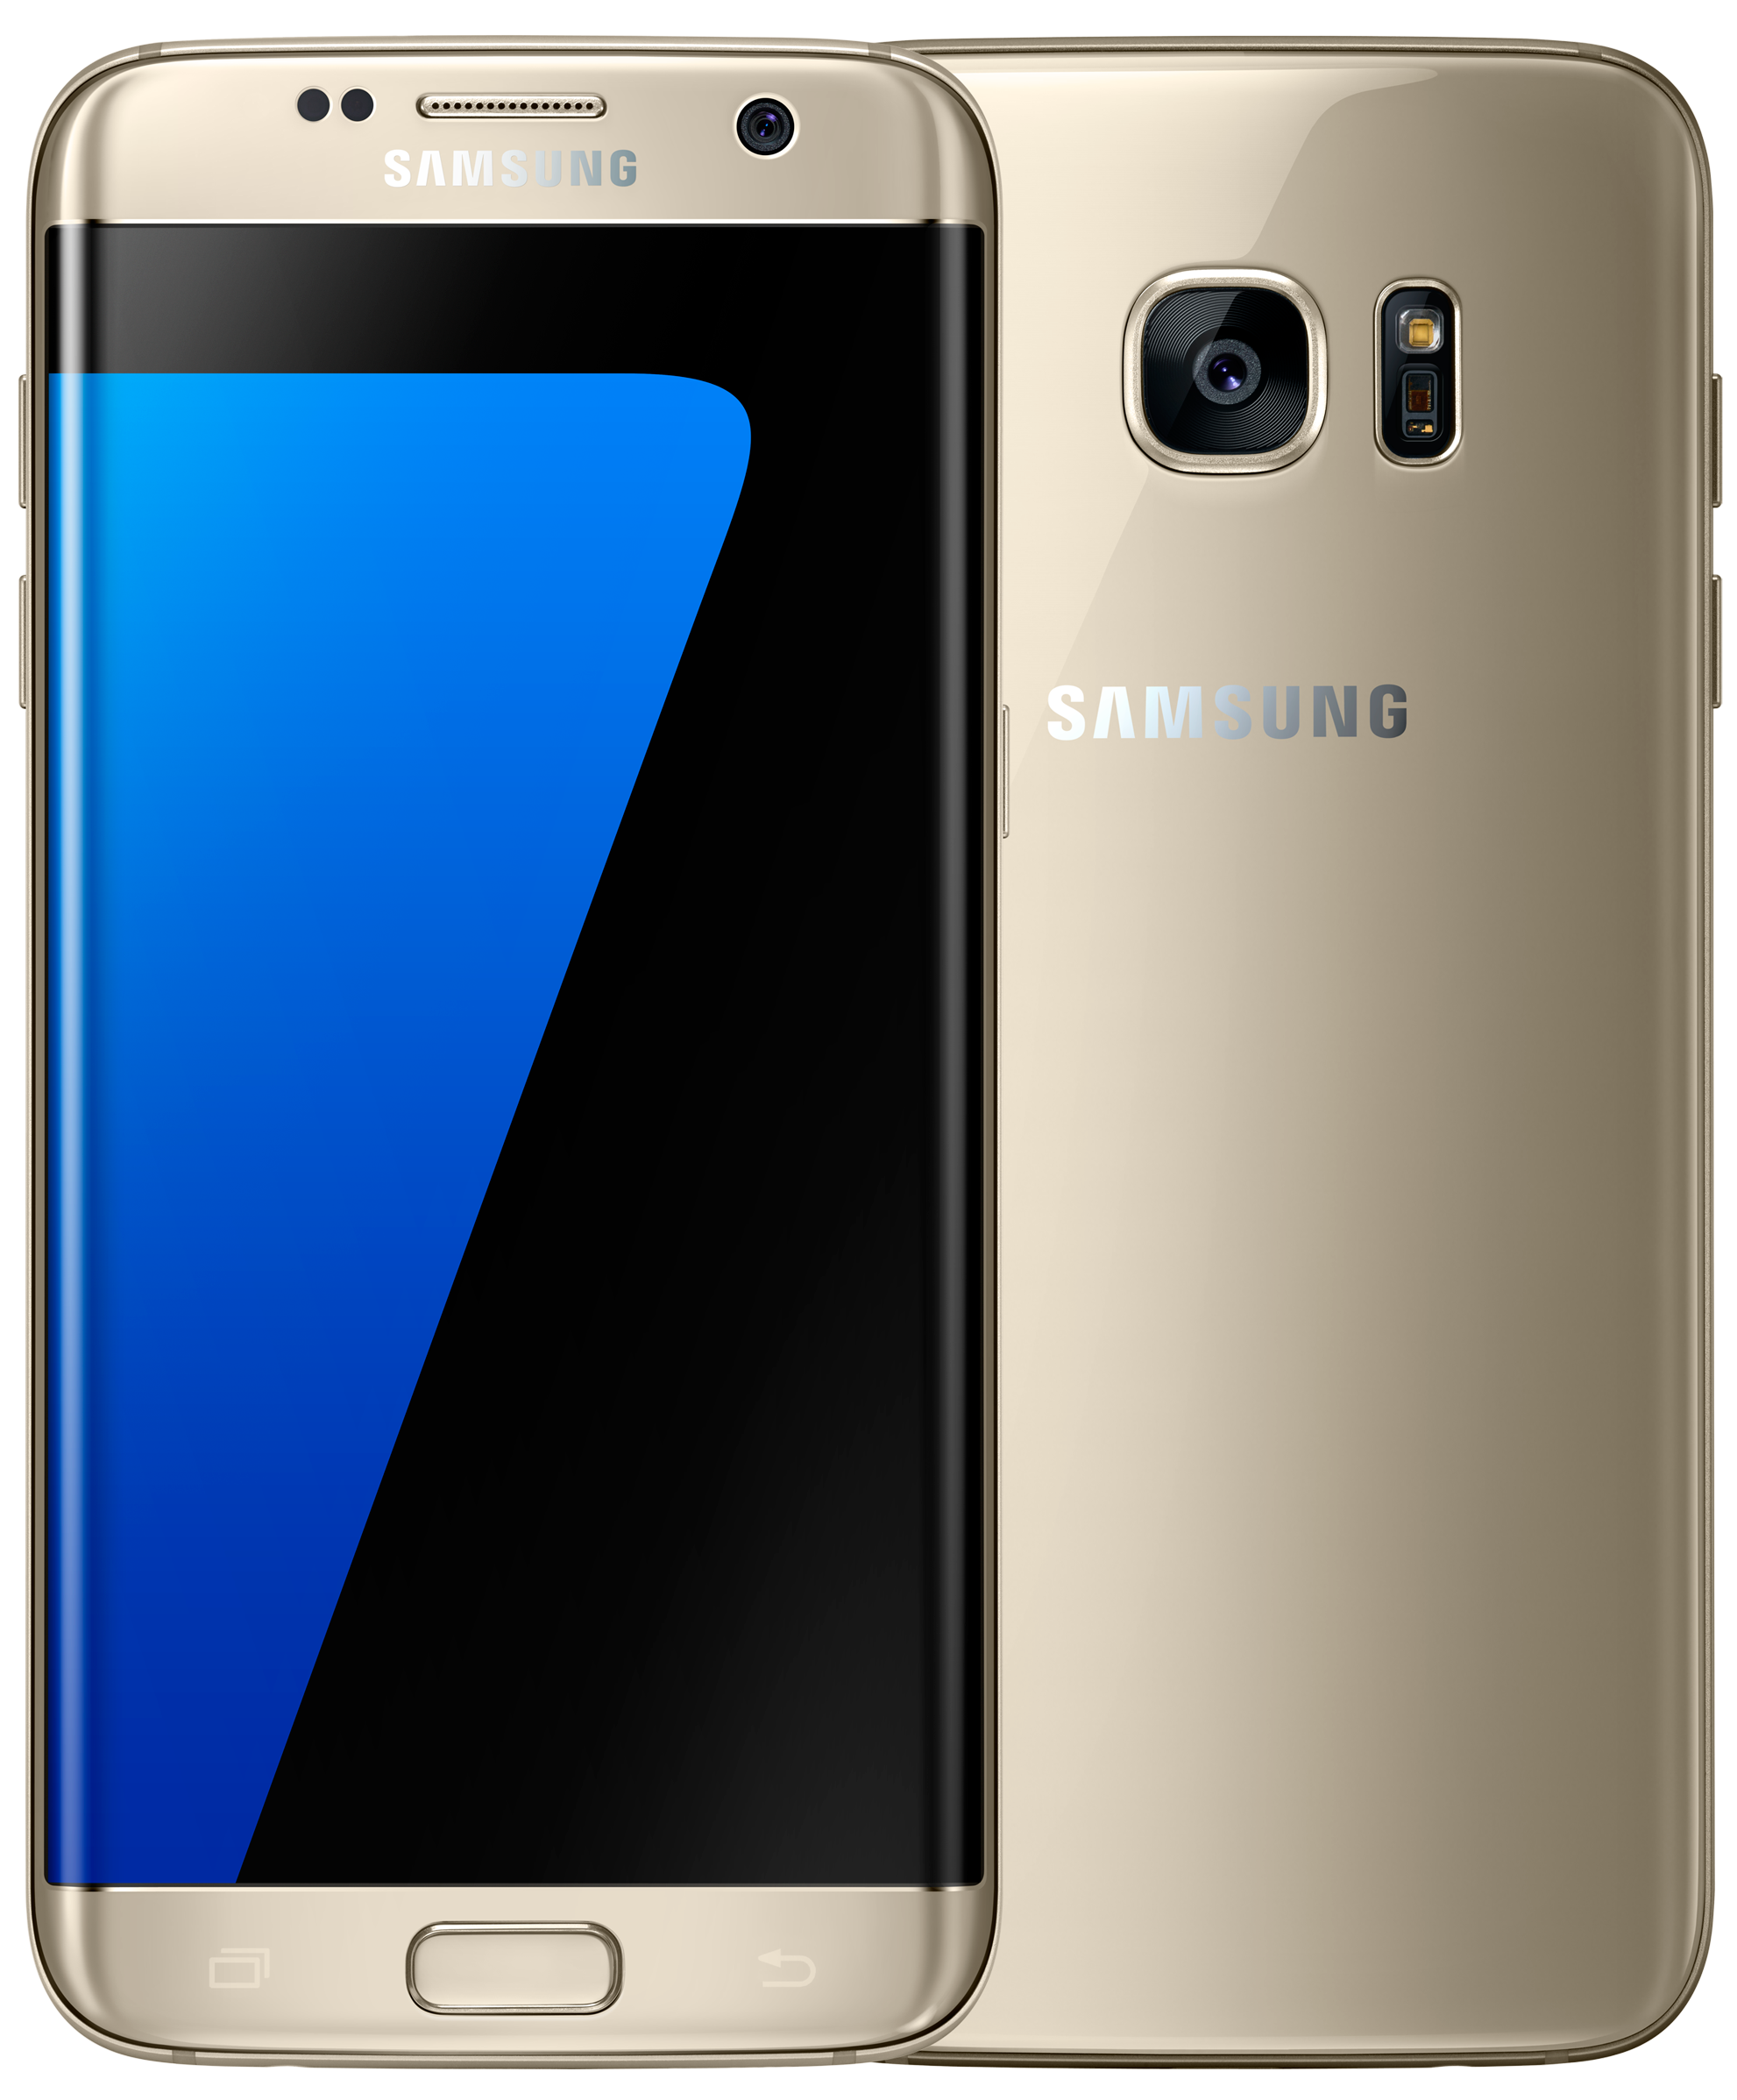 samsung galaxy s7 edge android smartphone 32gb gold. Black Bedroom Furniture Sets. Home Design Ideas